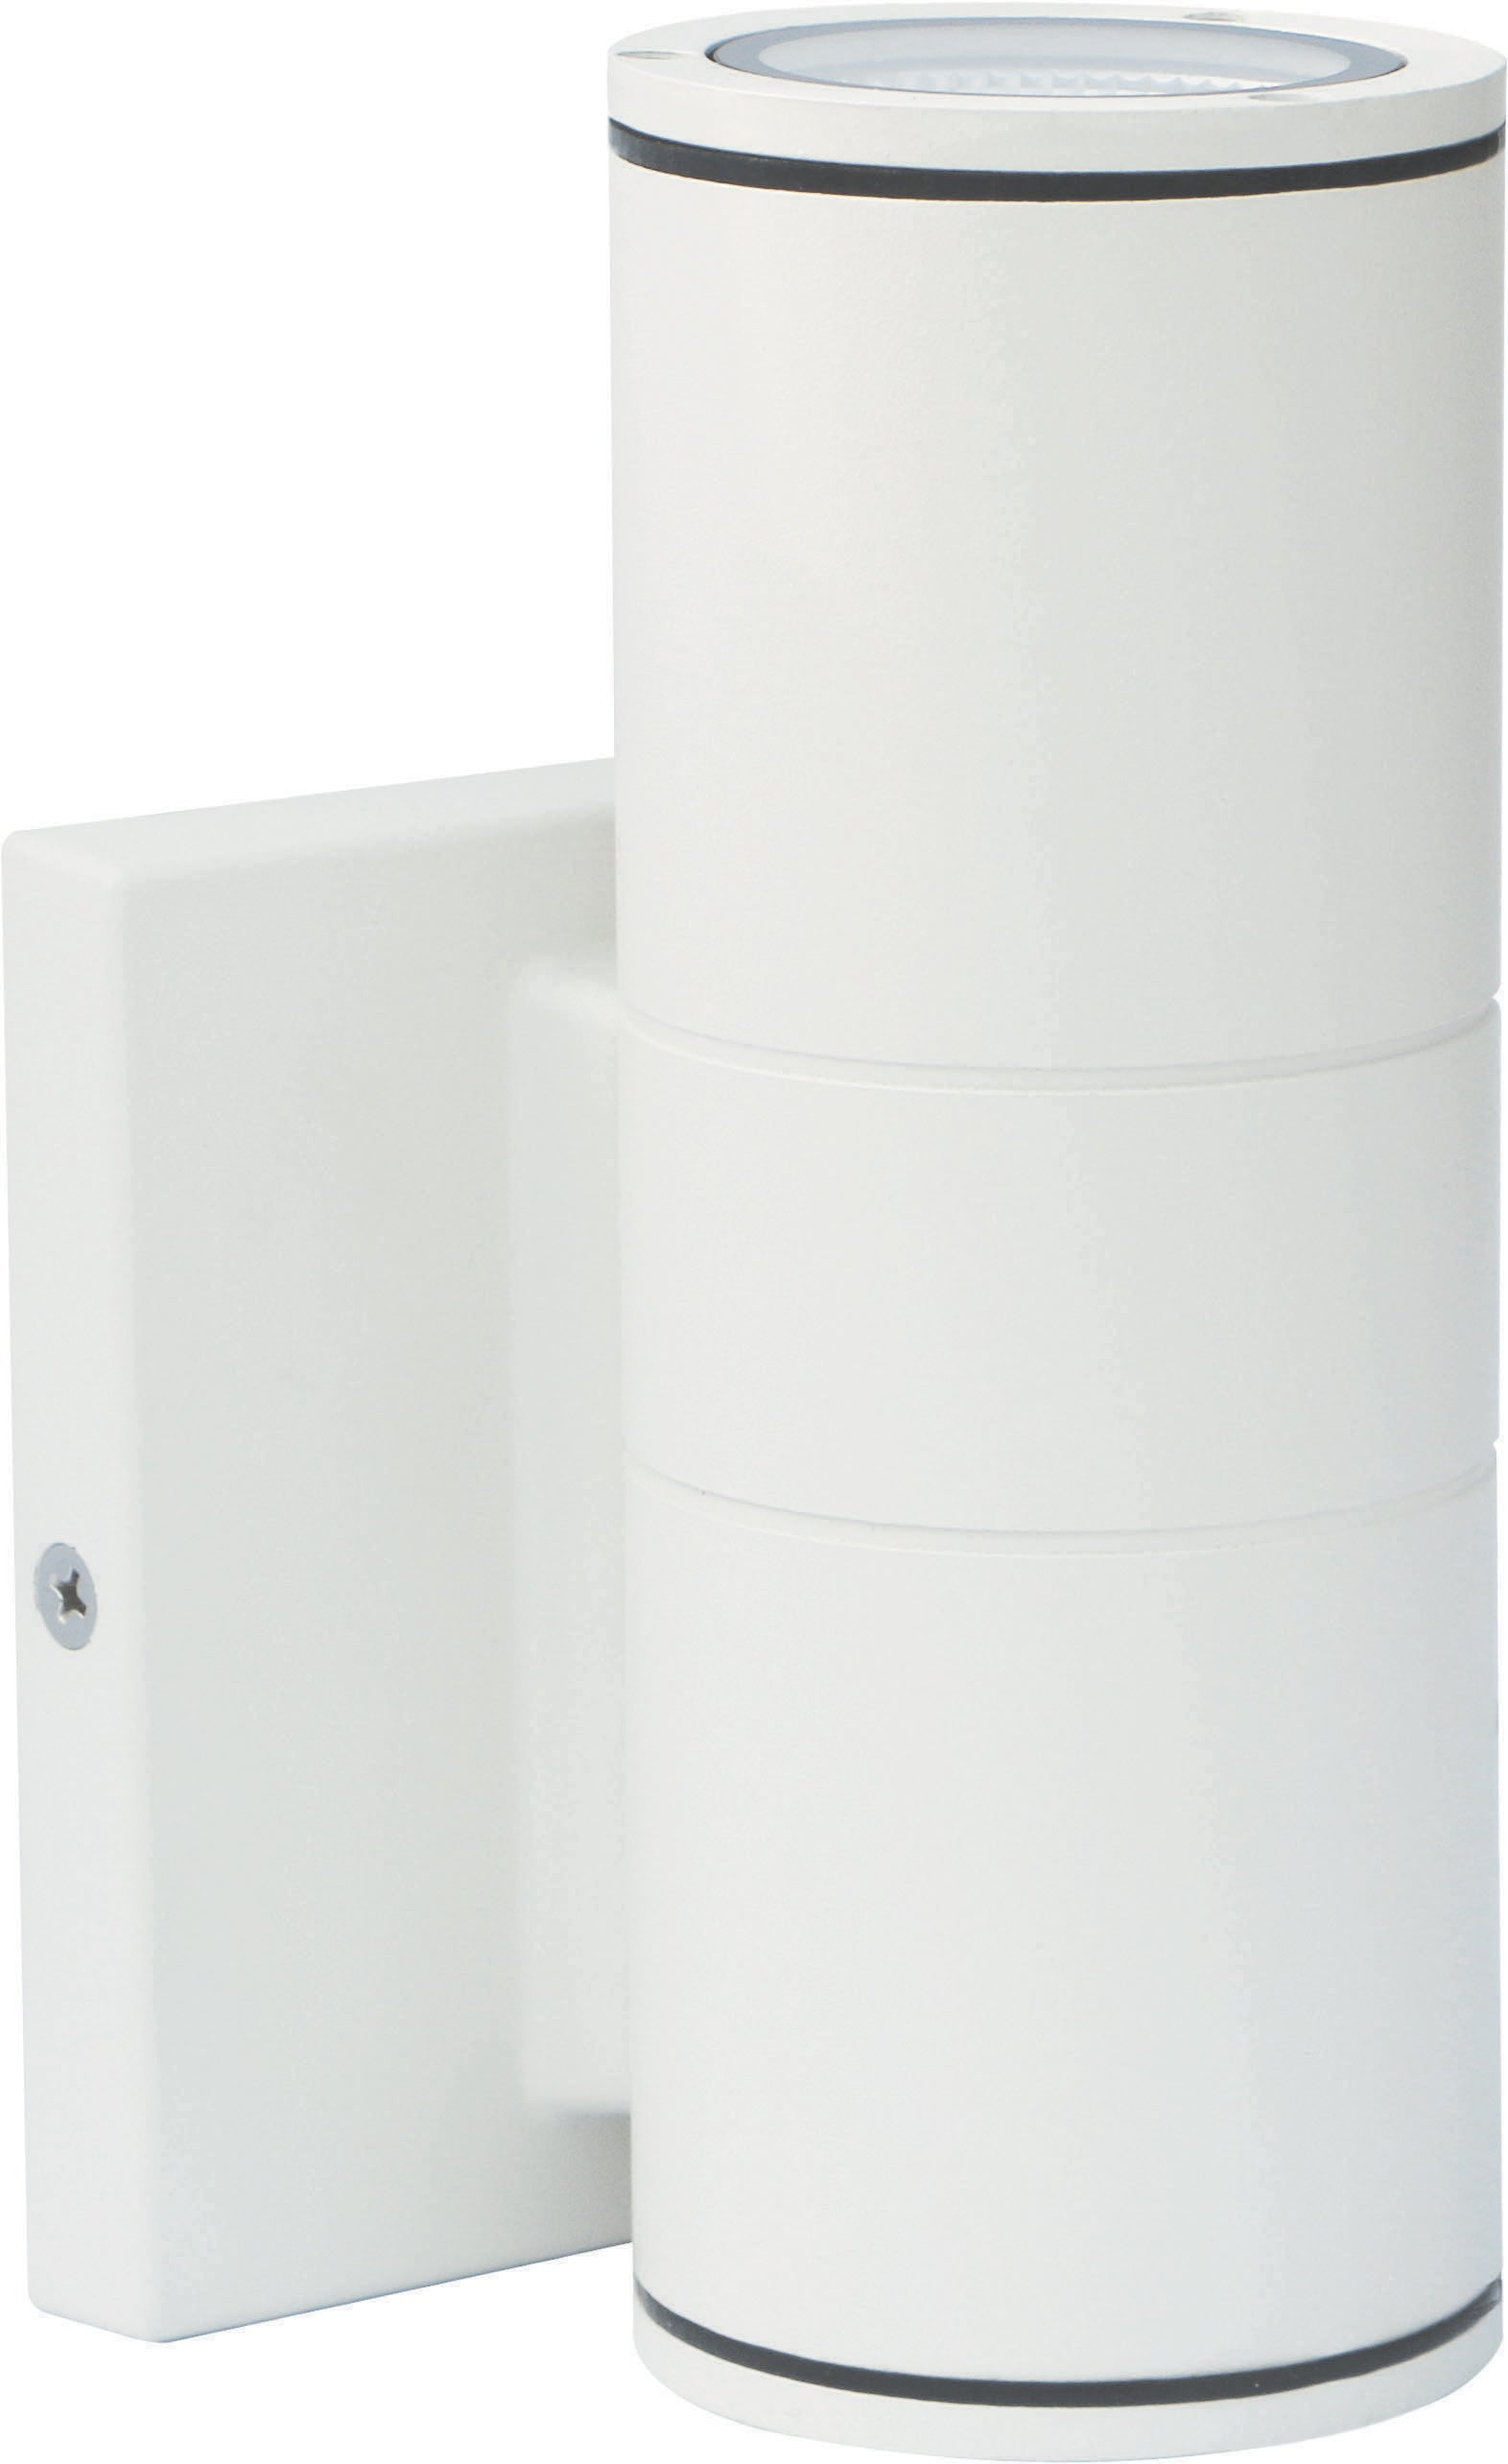 Nuvo 1-Light 10w Outdoor LED Wall Light Small Up or Down Sconce in White Finish